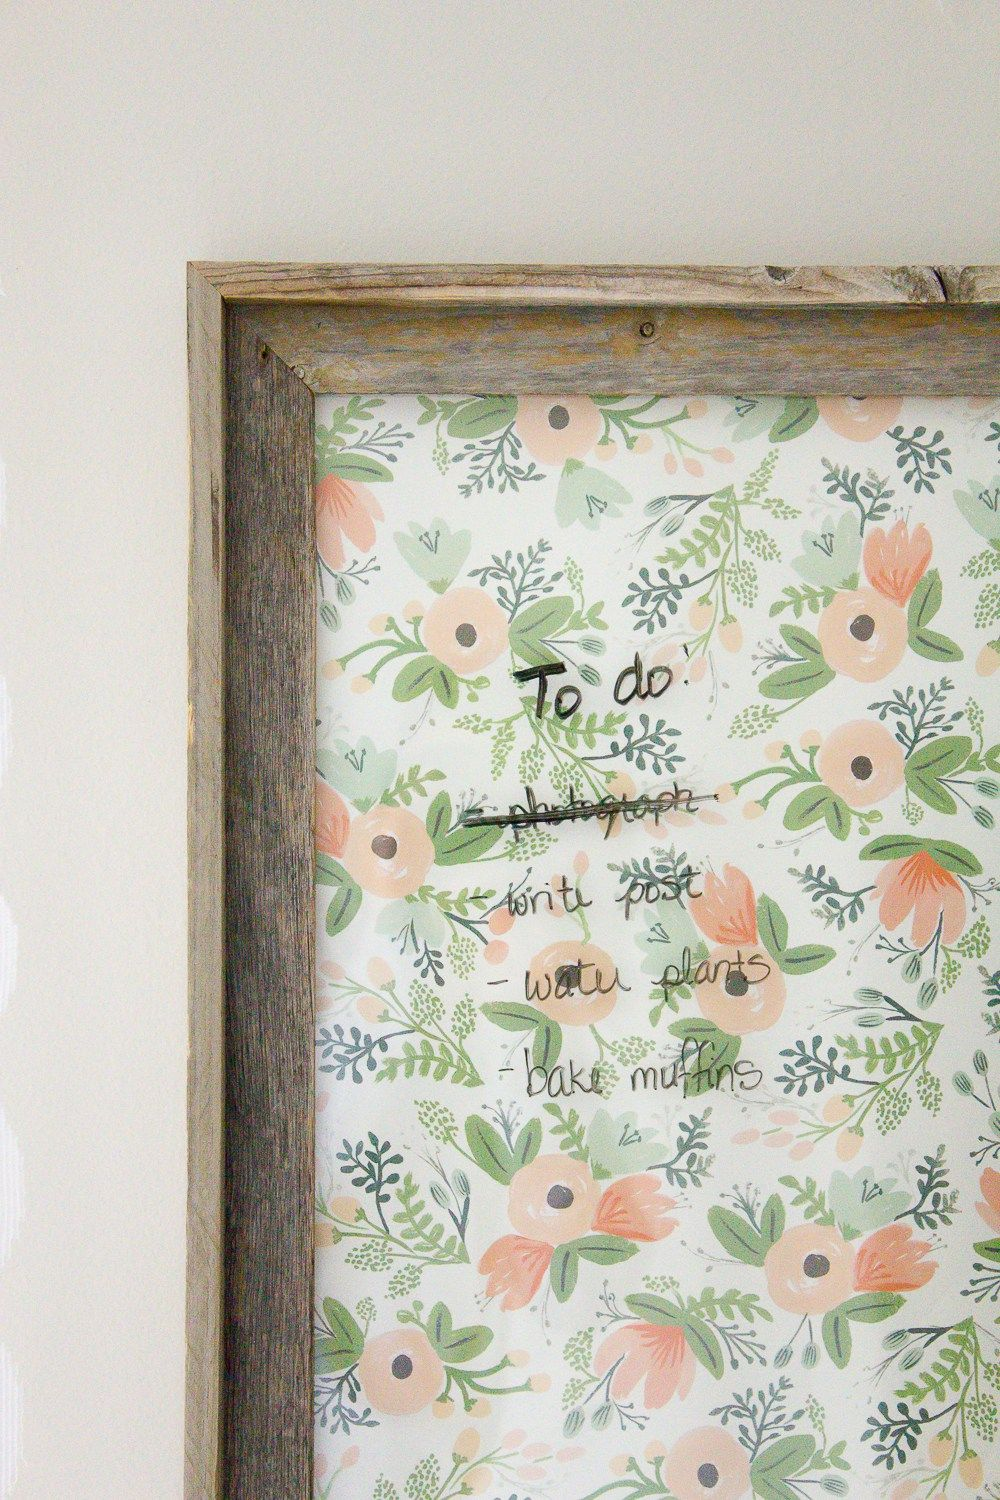 Farmhouse Home How To Make Your Own Dry Erase Board Diy The Circuit For Project Or You Can Do It Yourself At See I Turned An Old Picture Frame Into A Thats Both Functional And Pretty Makingitinthemountainscom